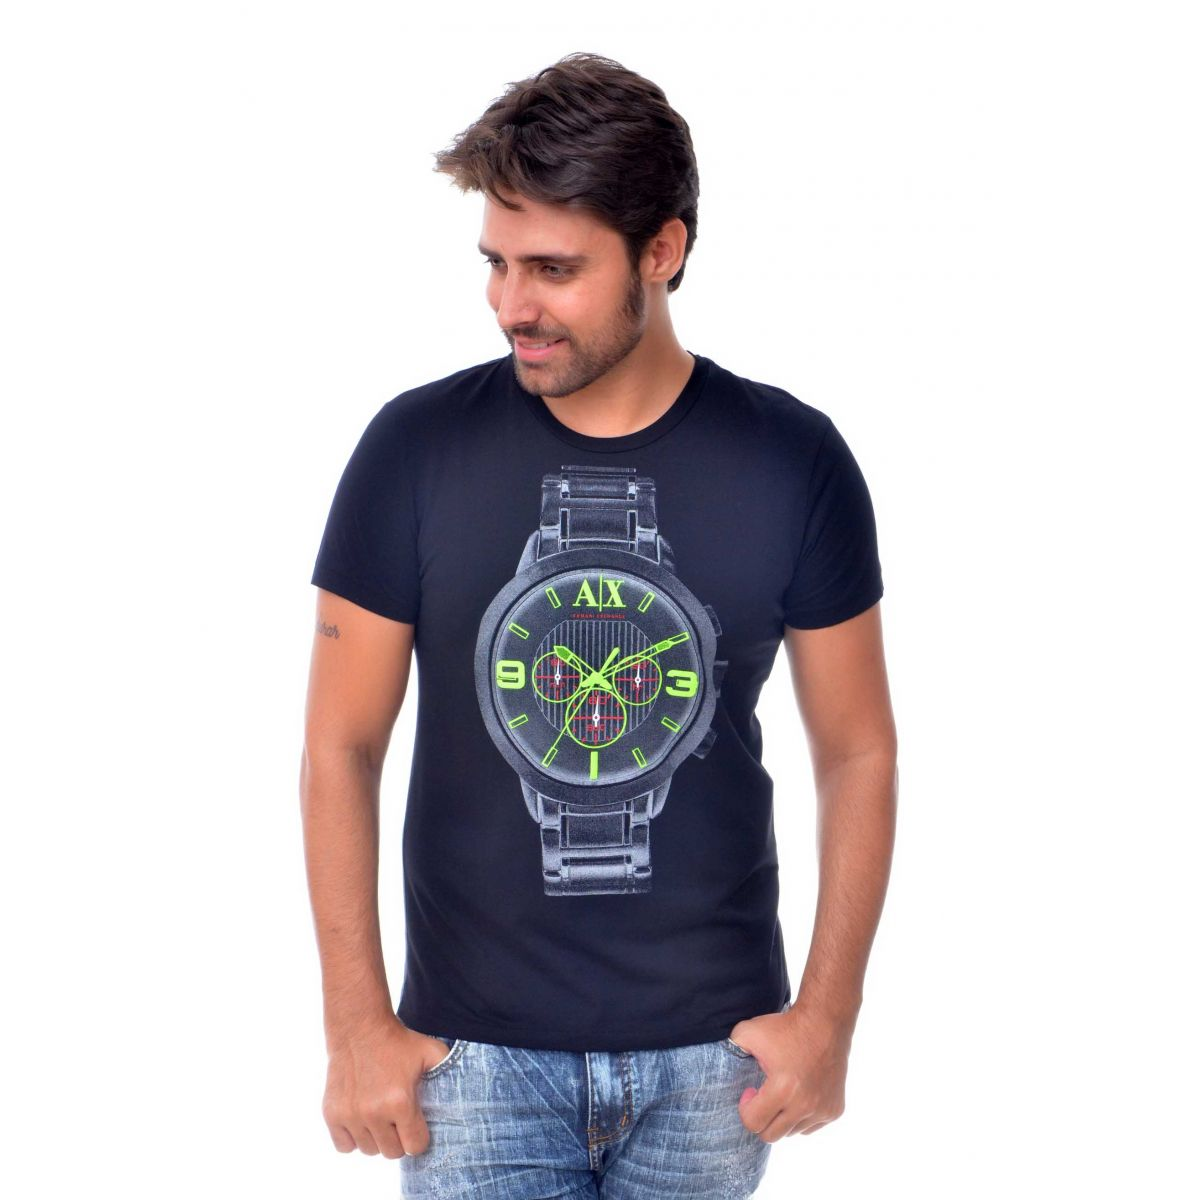 Camiseta Armani Exchange Watch Preta